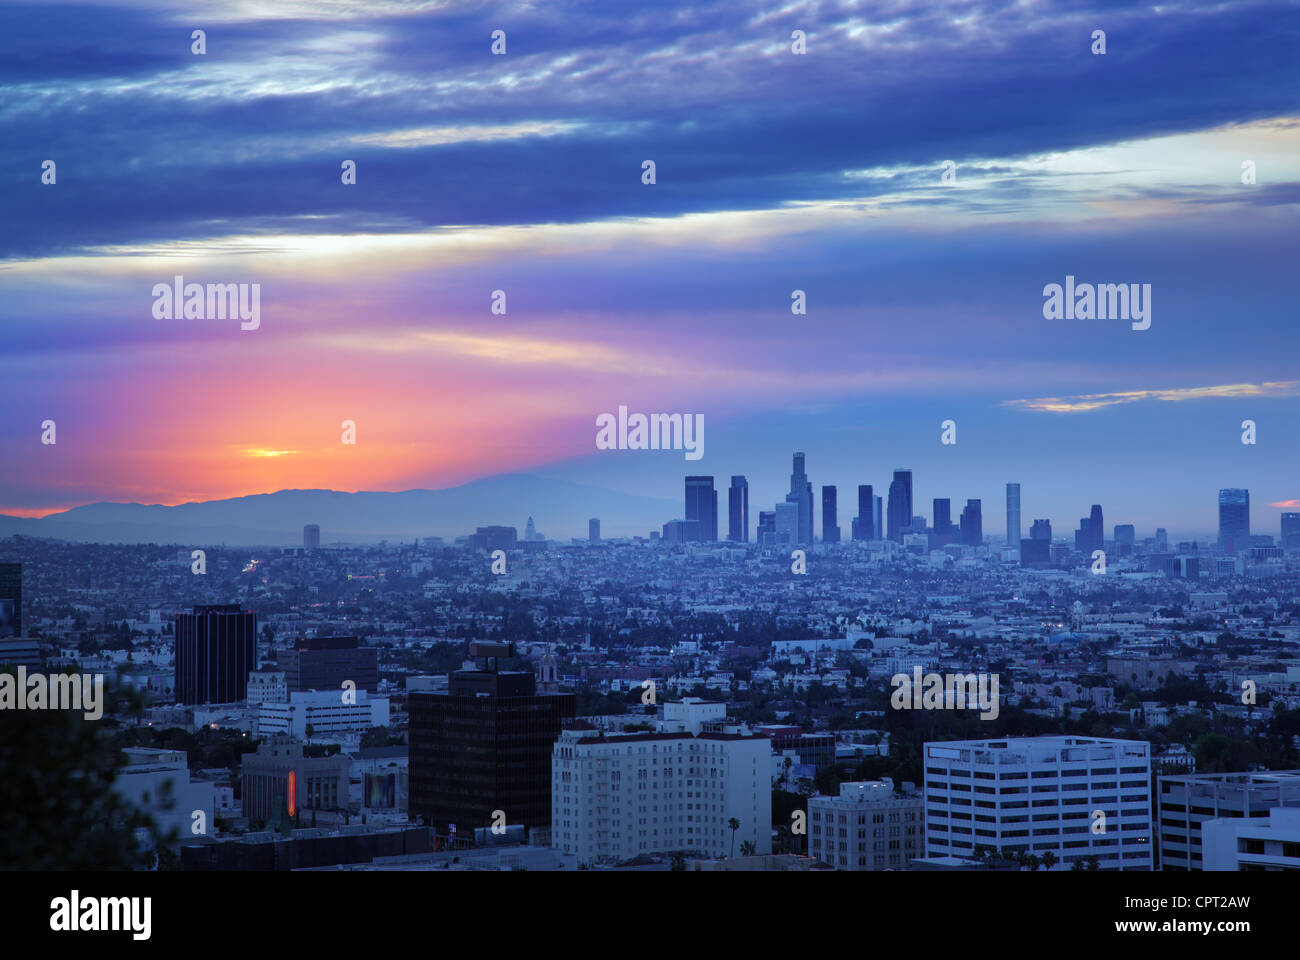 Los Angeles skyline at sunrise, view from Hollywood Hills. - Stock Image